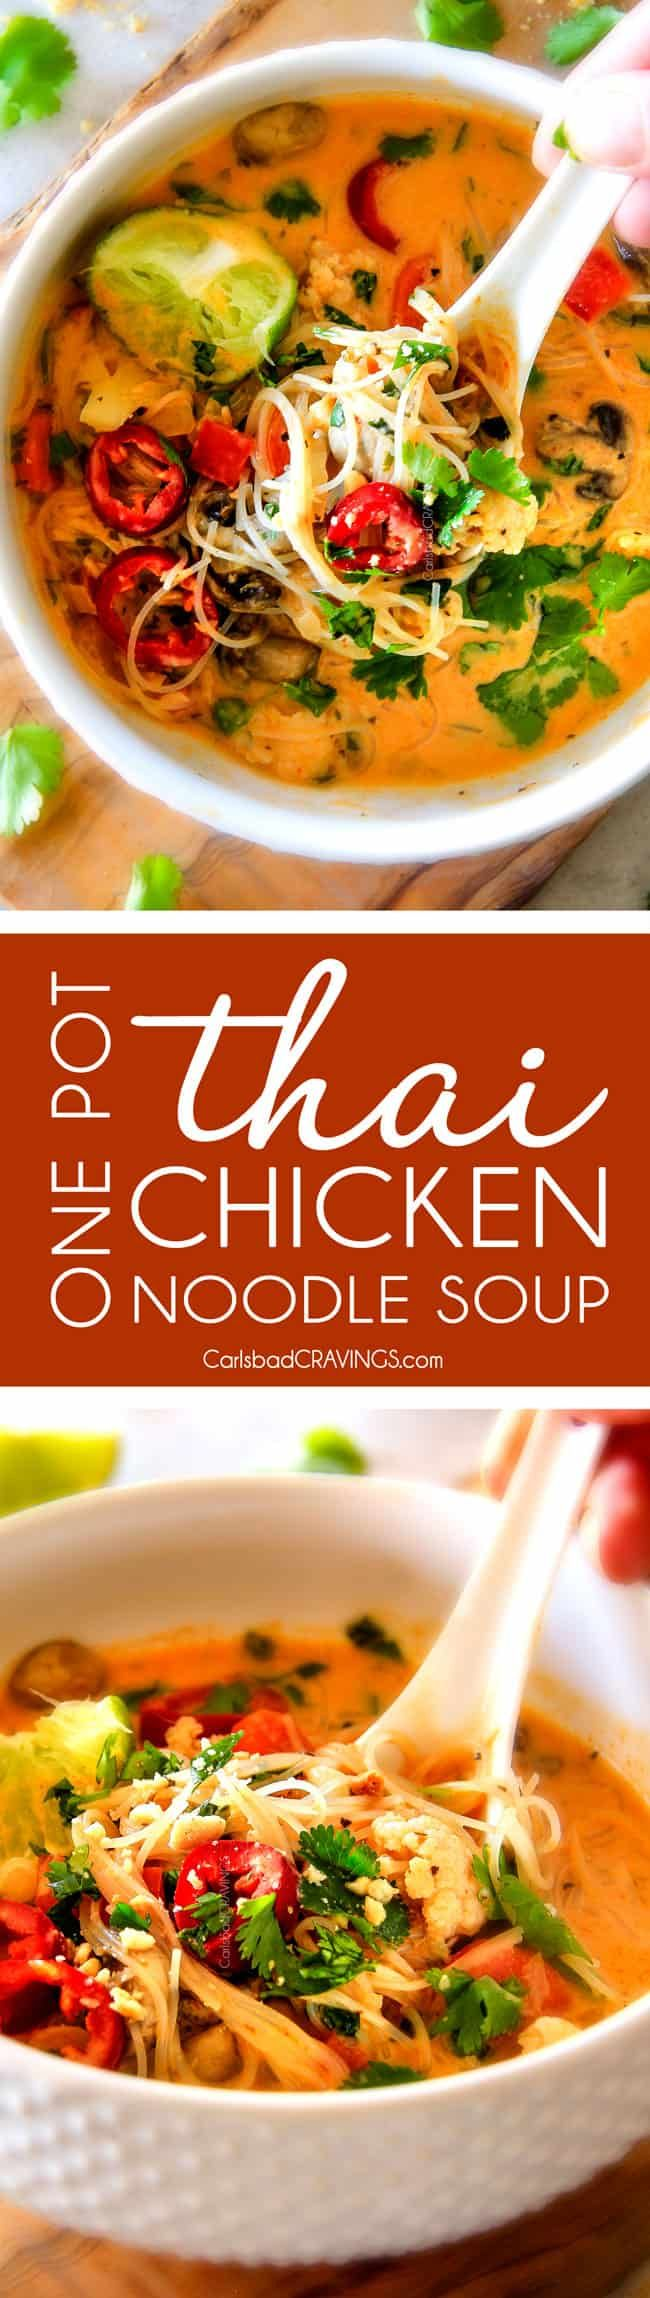 ONE POT Thai Chicken Noodle Soup - this is one of my favorite soups I have ever tasted let alone made! Its way better than takeout with layers of warm, comforting aromatic flavors and I love all the veggies! I had never cooked with rice noodles and the texture was outstanding, even in leftovers! via @carlsbadcraving